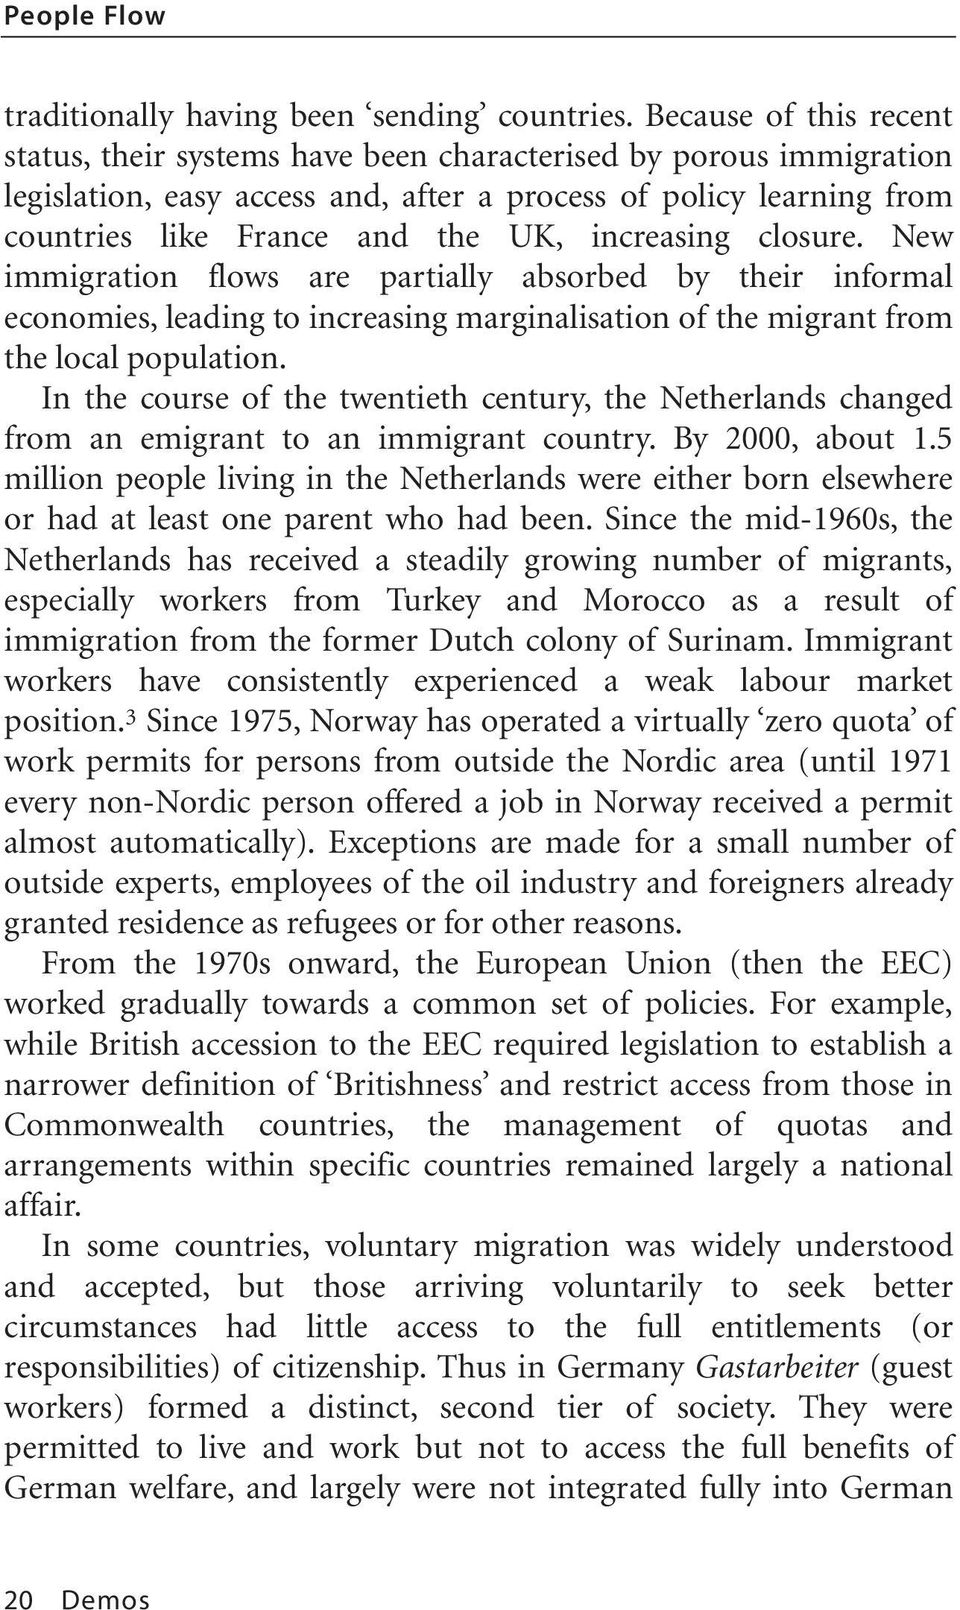 increasing closure. New immigration flows are partially absorbed by their informal economies, leading to increasing marginalisation of the migrant from the local population.